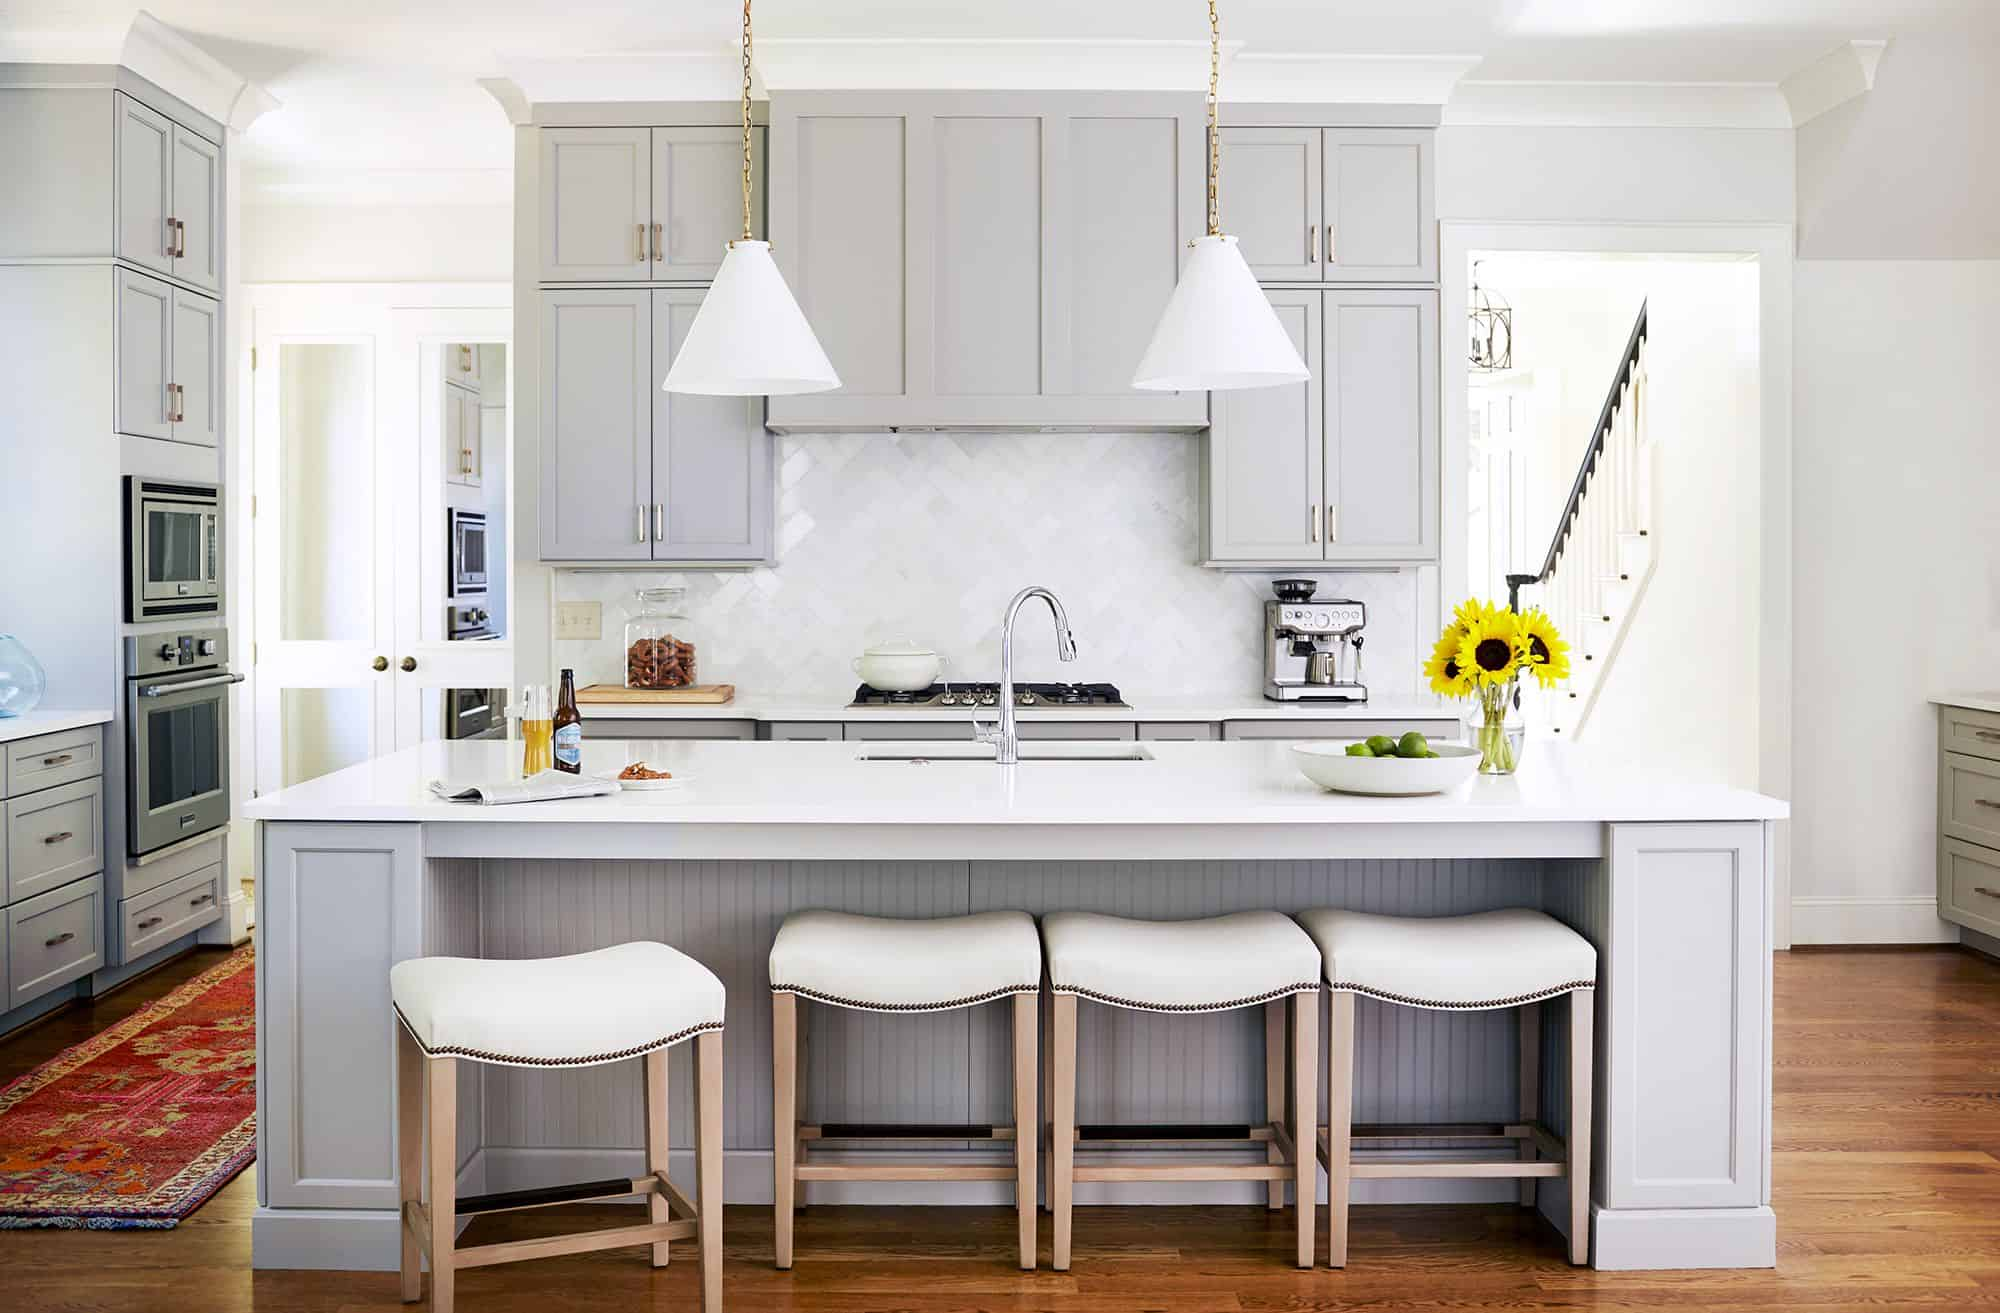 gray kitchen wth concealed hood Chic Kitchens With Concealed Range Hoods